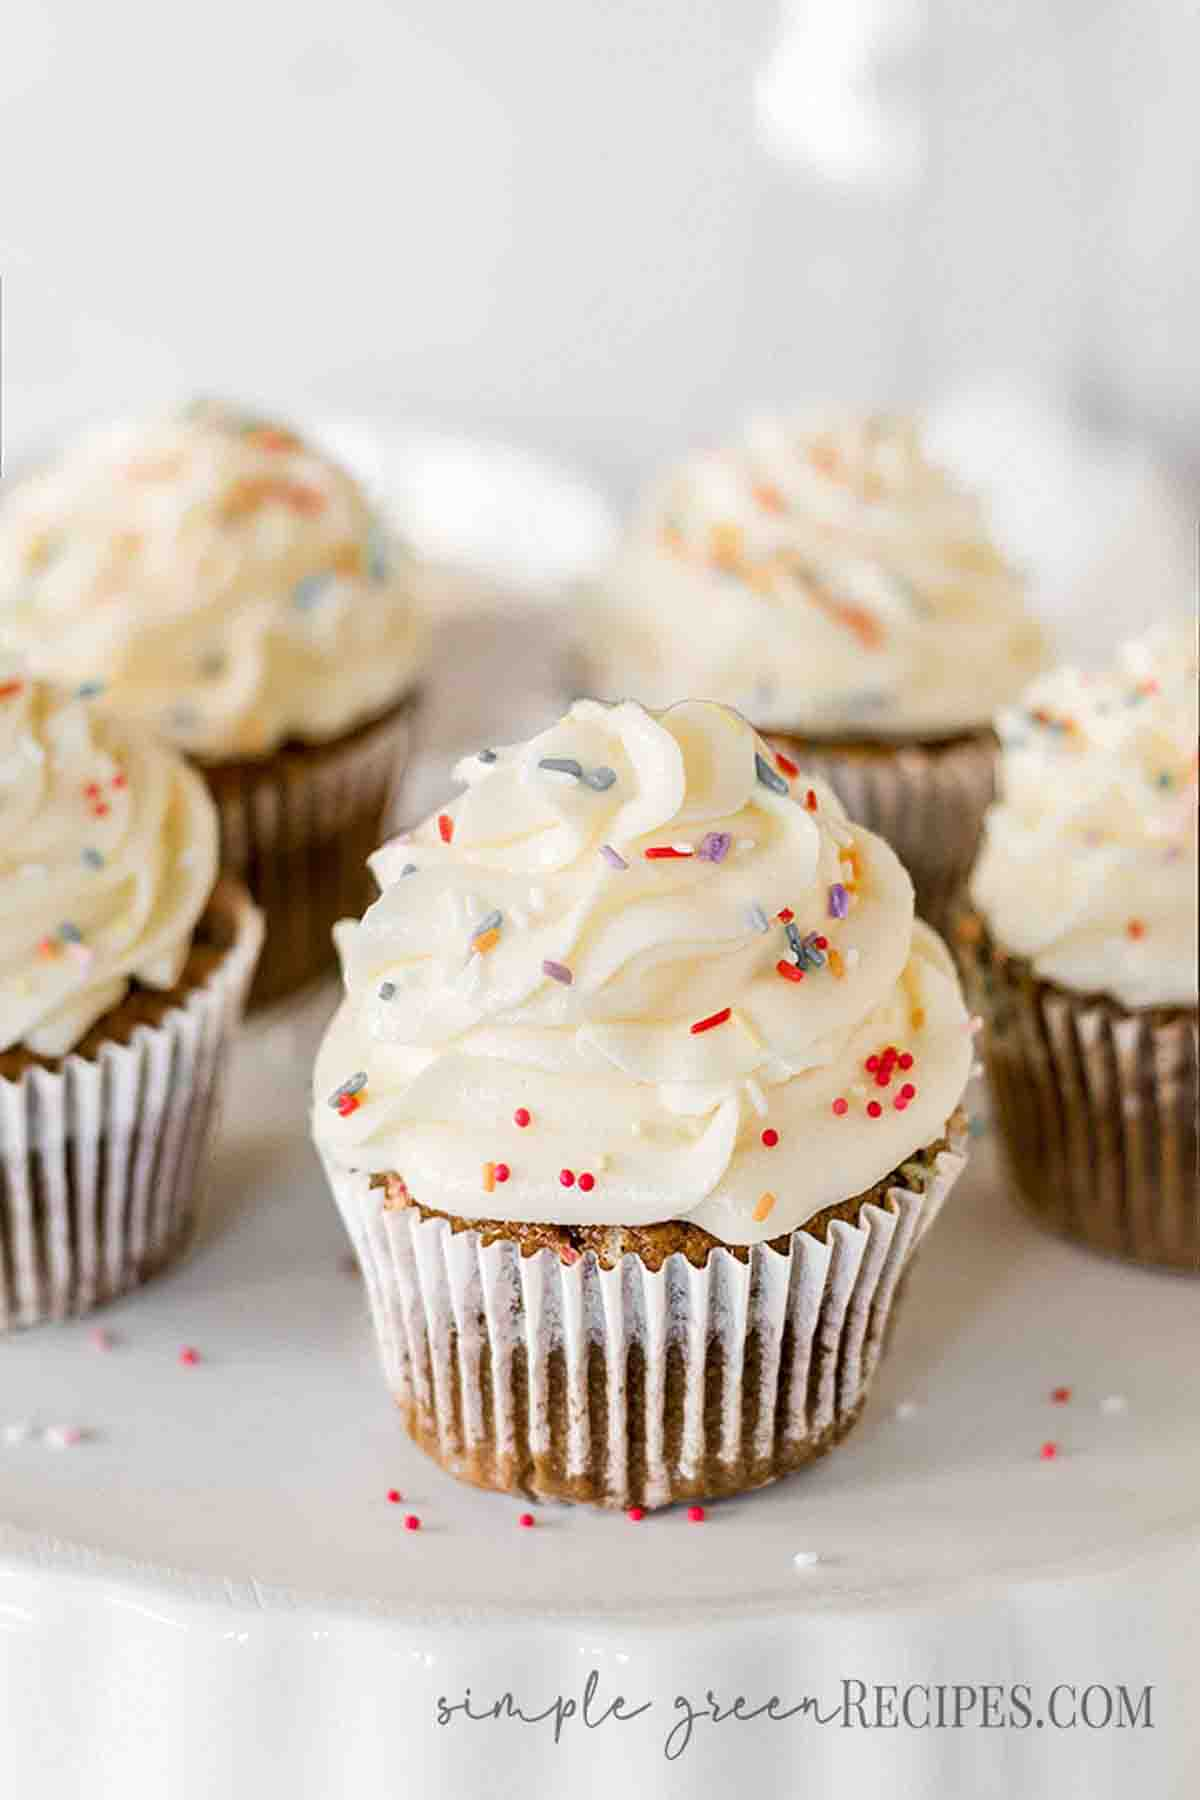 Cupcakes frosted with vanilla buttercream and topped with colourful sprinkles